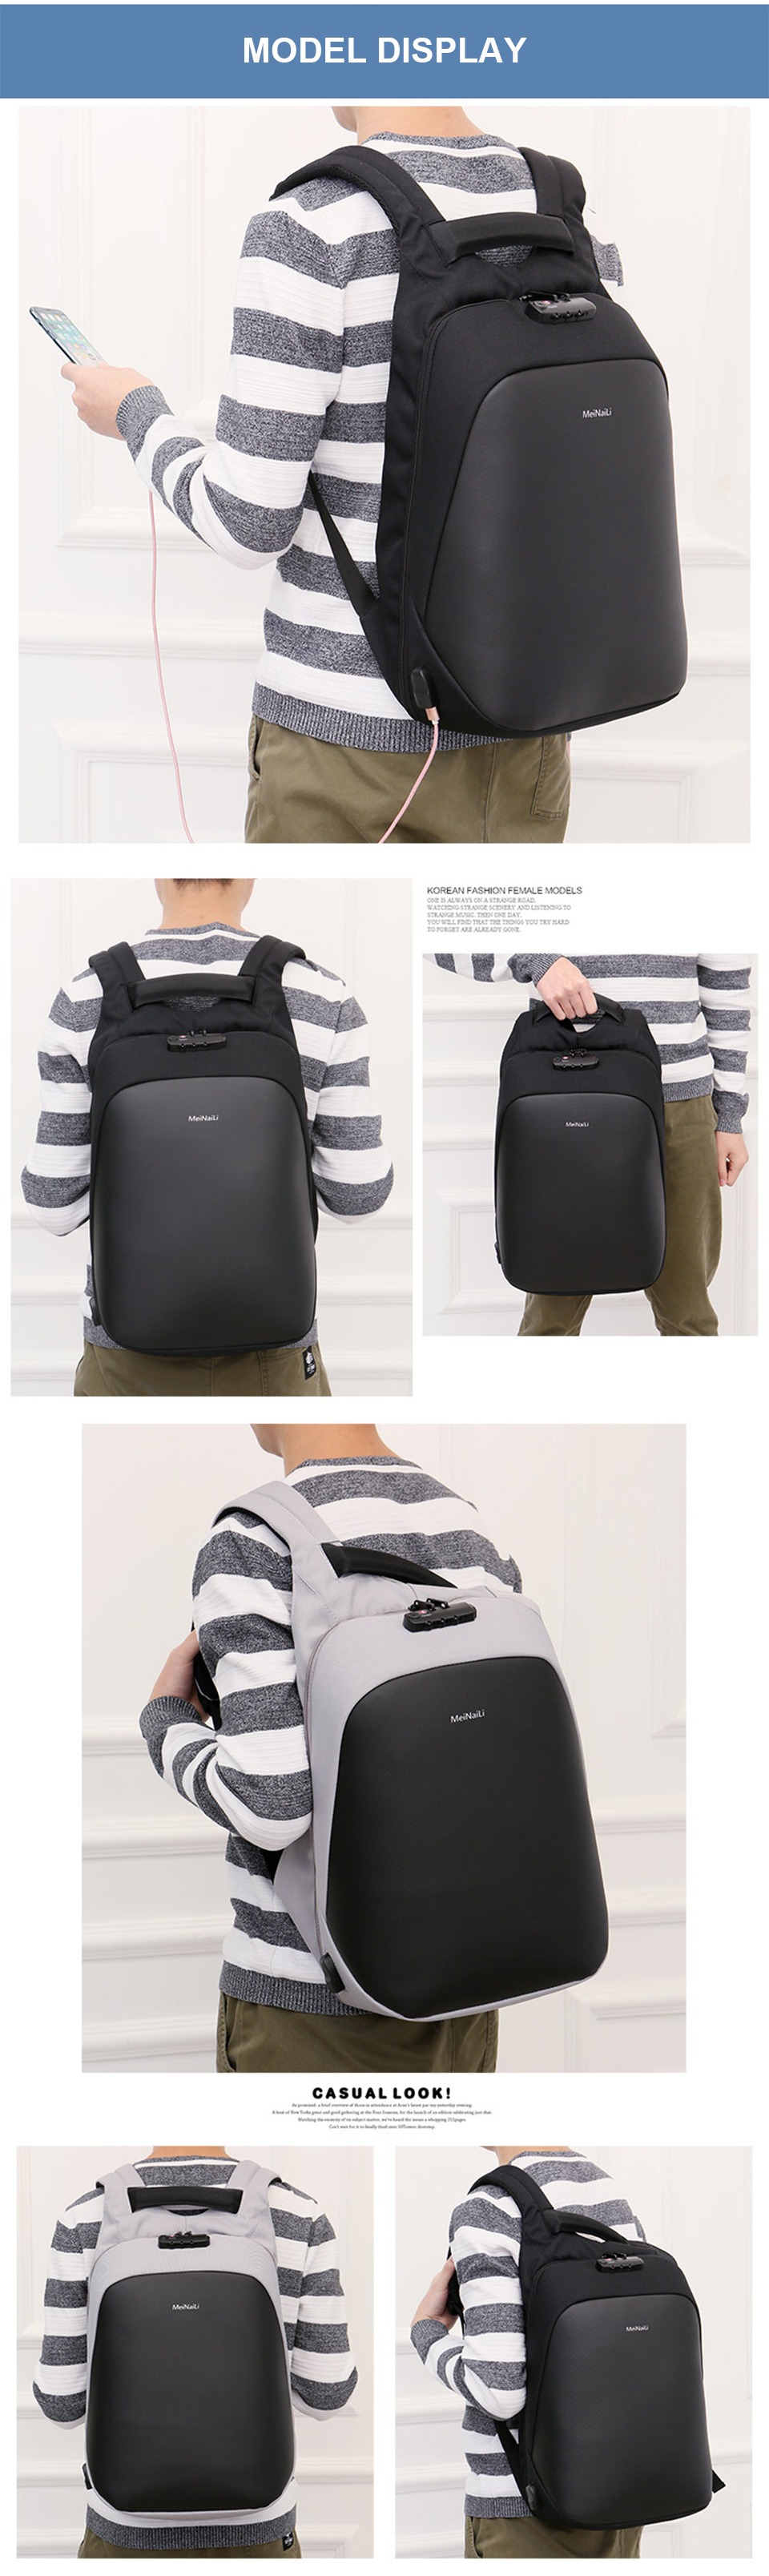 8 Anti Theft Backpacks Man Bag Large Capacity 15.6 Inch Laptop Notebook Backpack Business USB Back Pack Travel luggage Backpacking